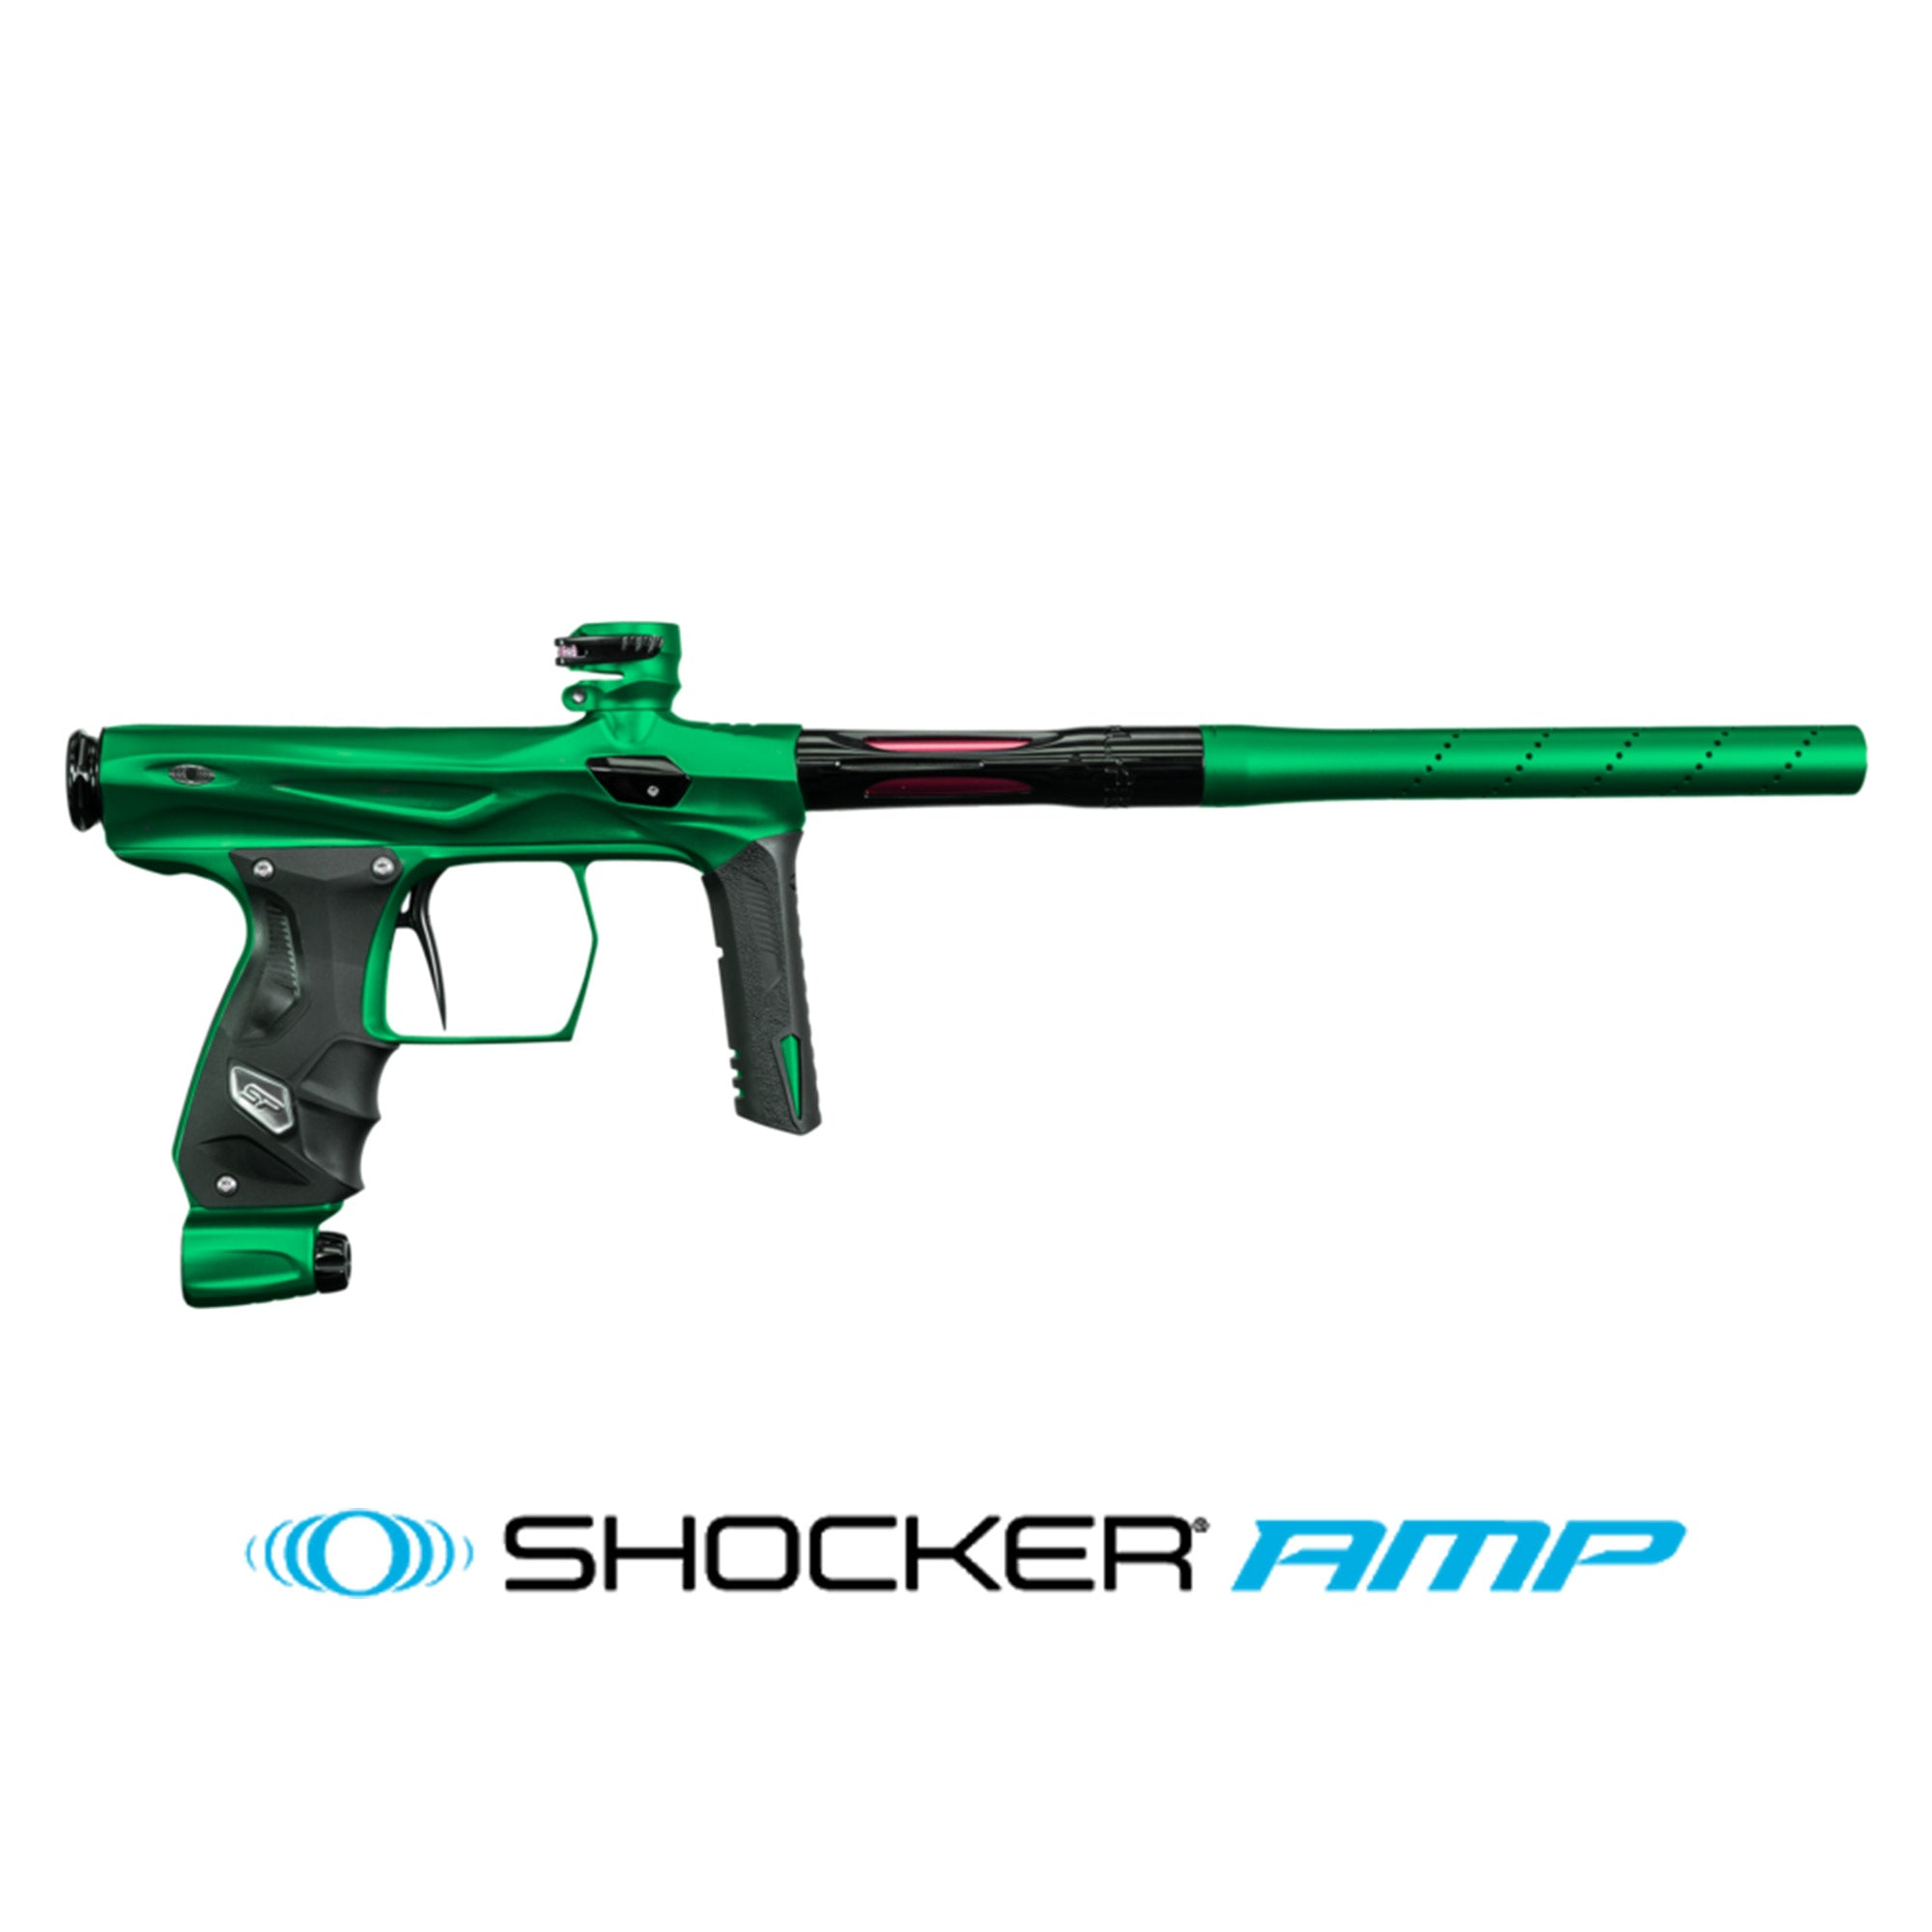 SP Shocker AMP - Green